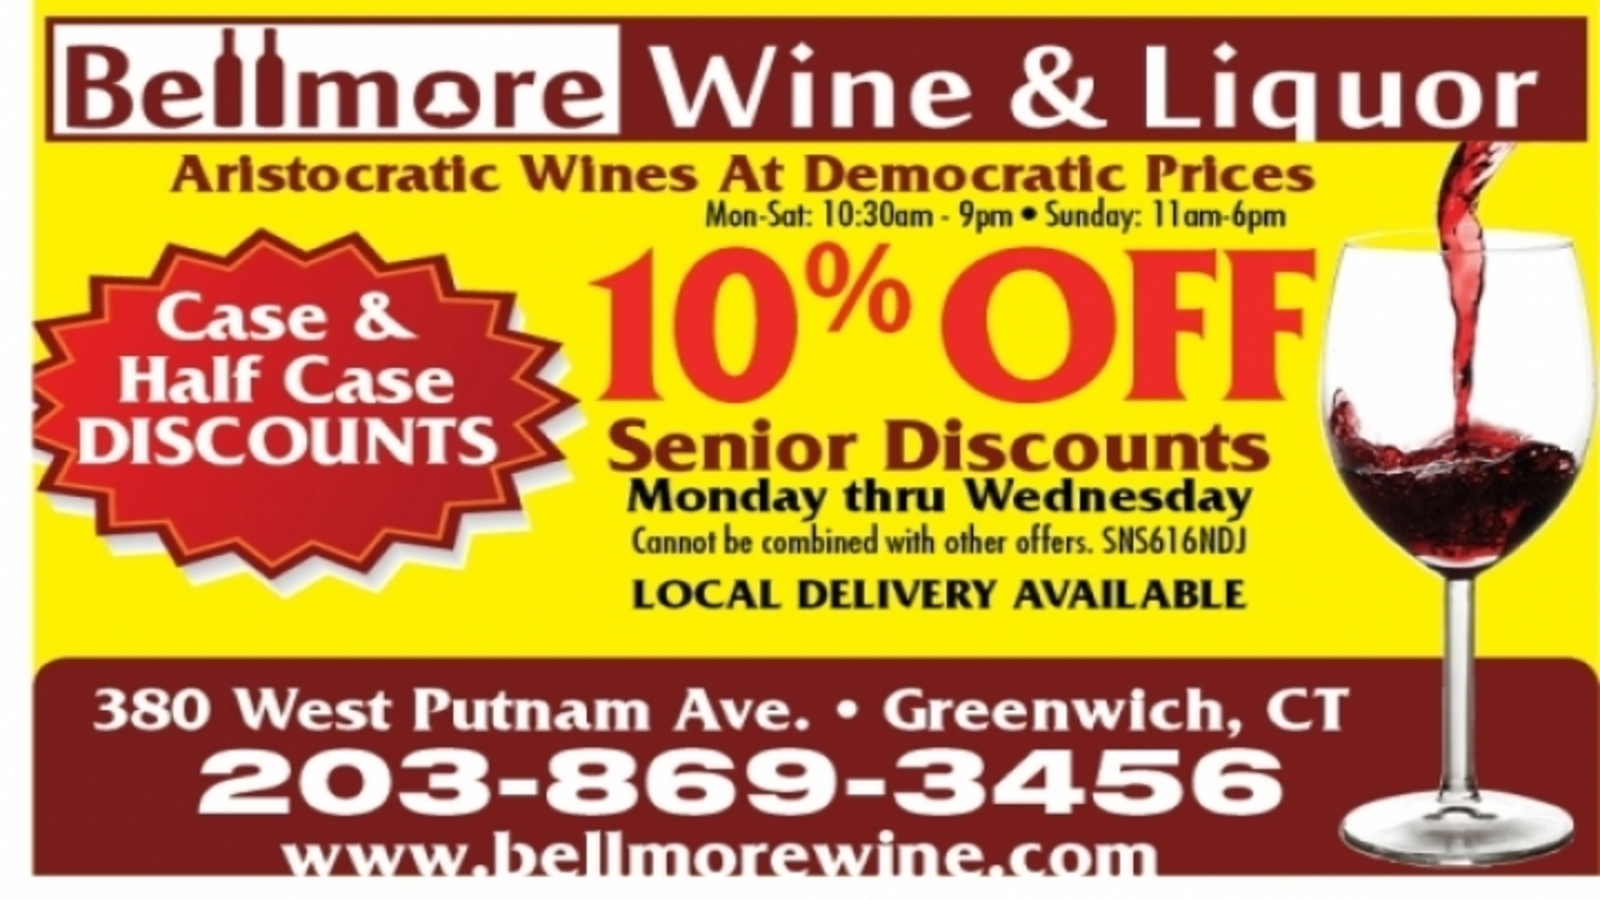 Bellmore Wine & Liquor image 1